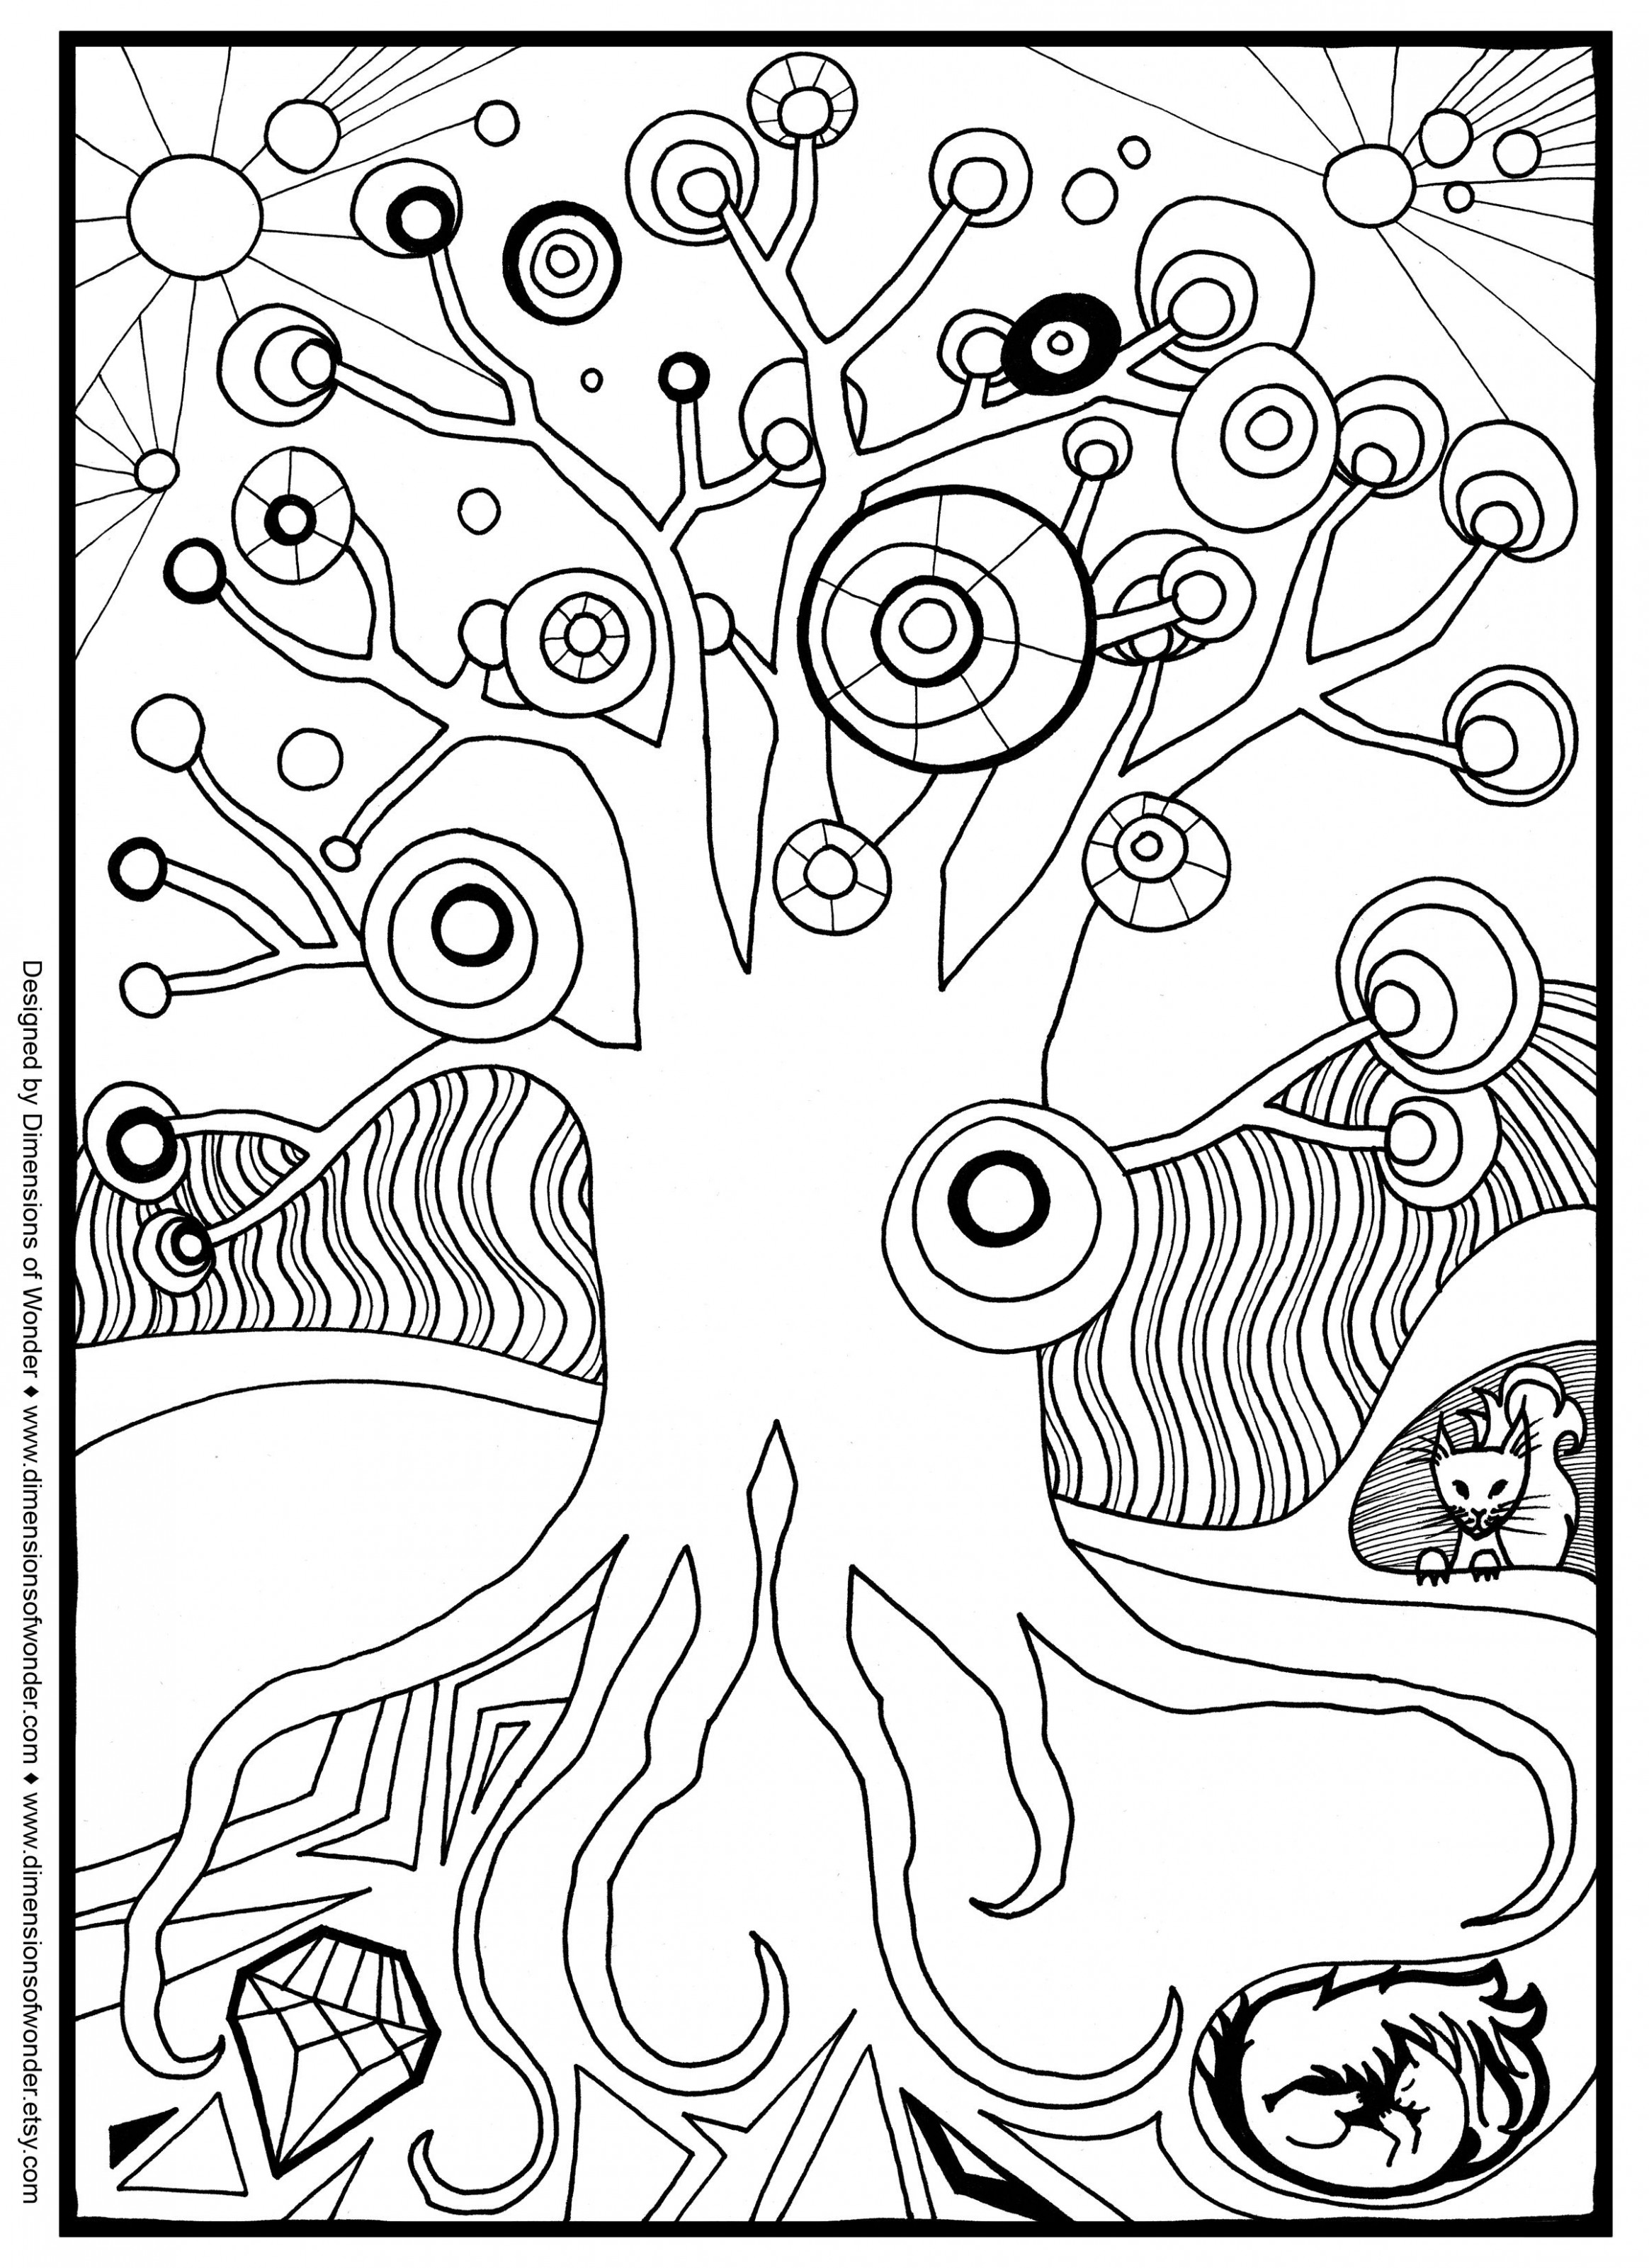 Coloring Pages for Adults Only   Christmas Coloring Pages Printables ..